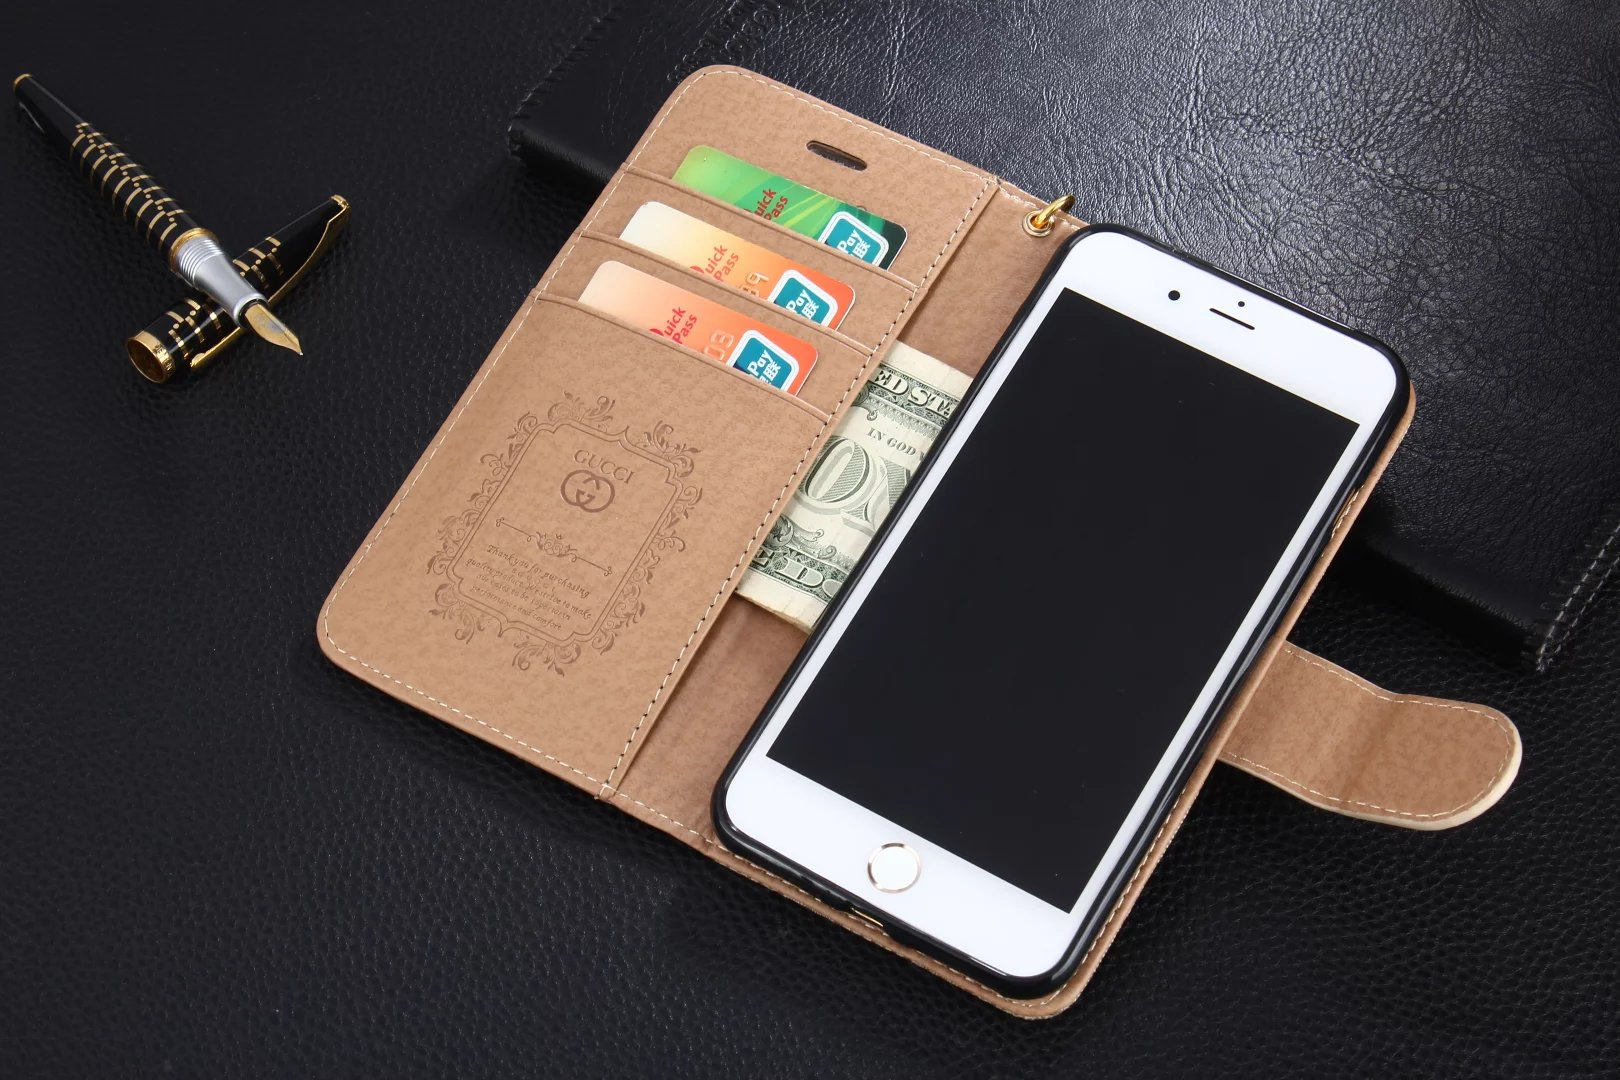 where to buy iphone 6 Plus cases nice iphone 6 Plus cases fashion iphone6 plus case iphone 6 new cases official apple iphone 6 case online phone case store iphone 6 black cover iphone case store iphone 6 leather cover